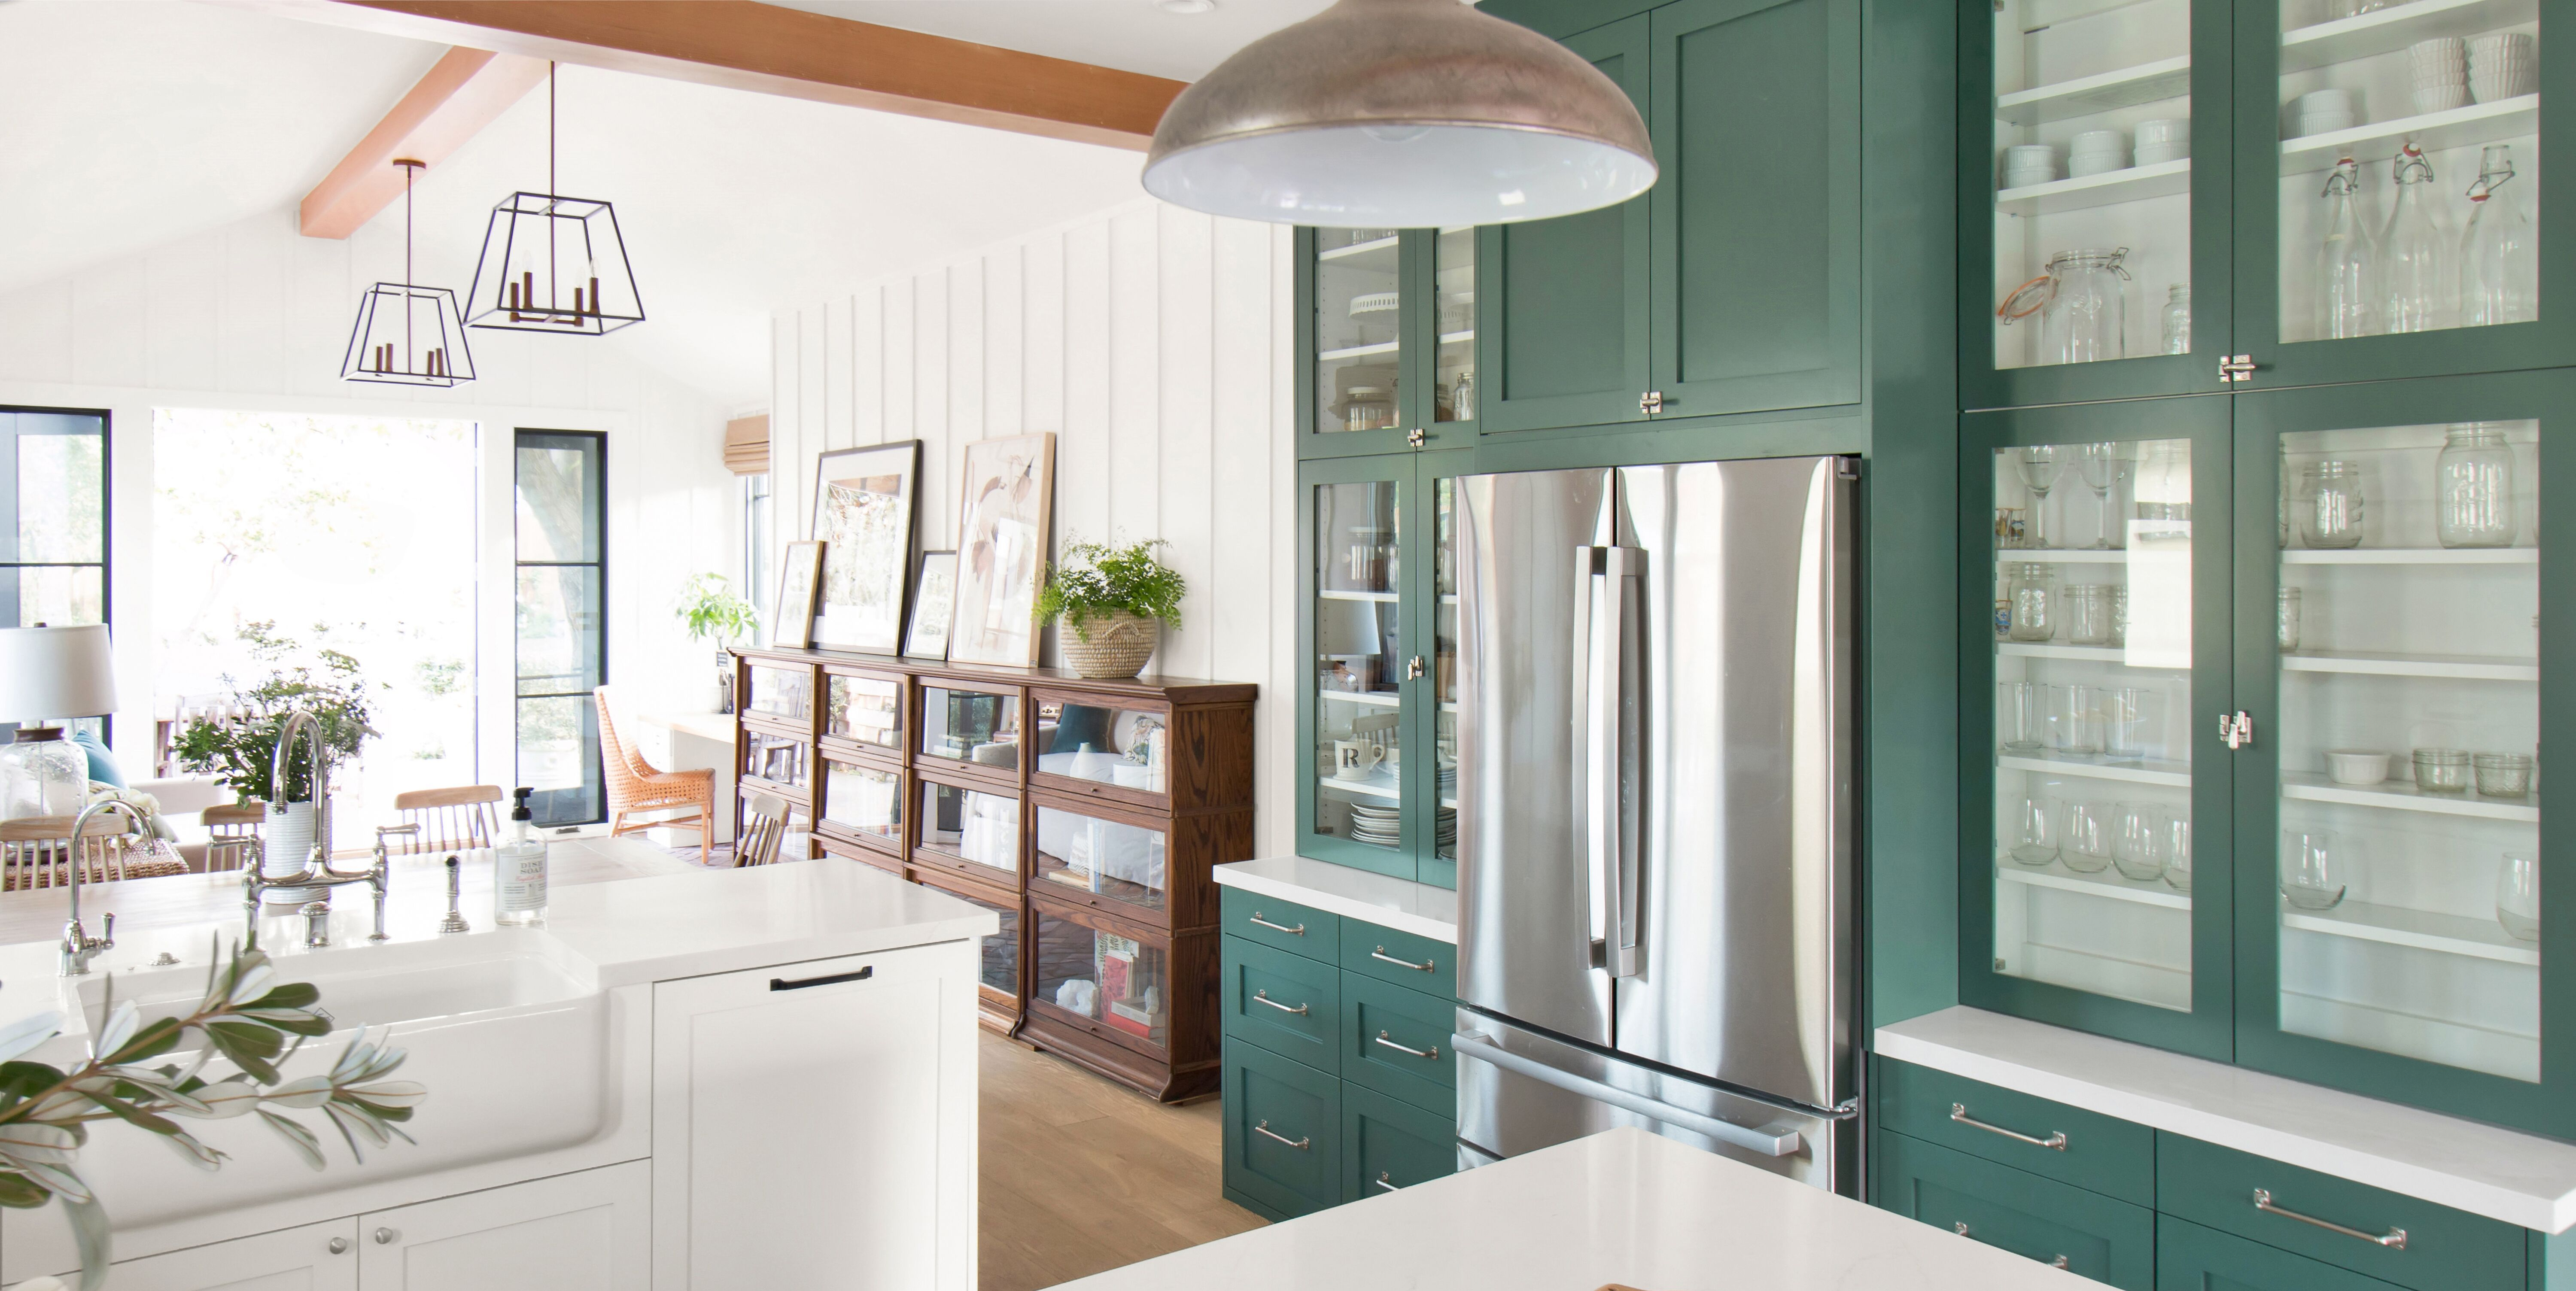 10+ Teal Paint Colors That Top Designers Swoon Over